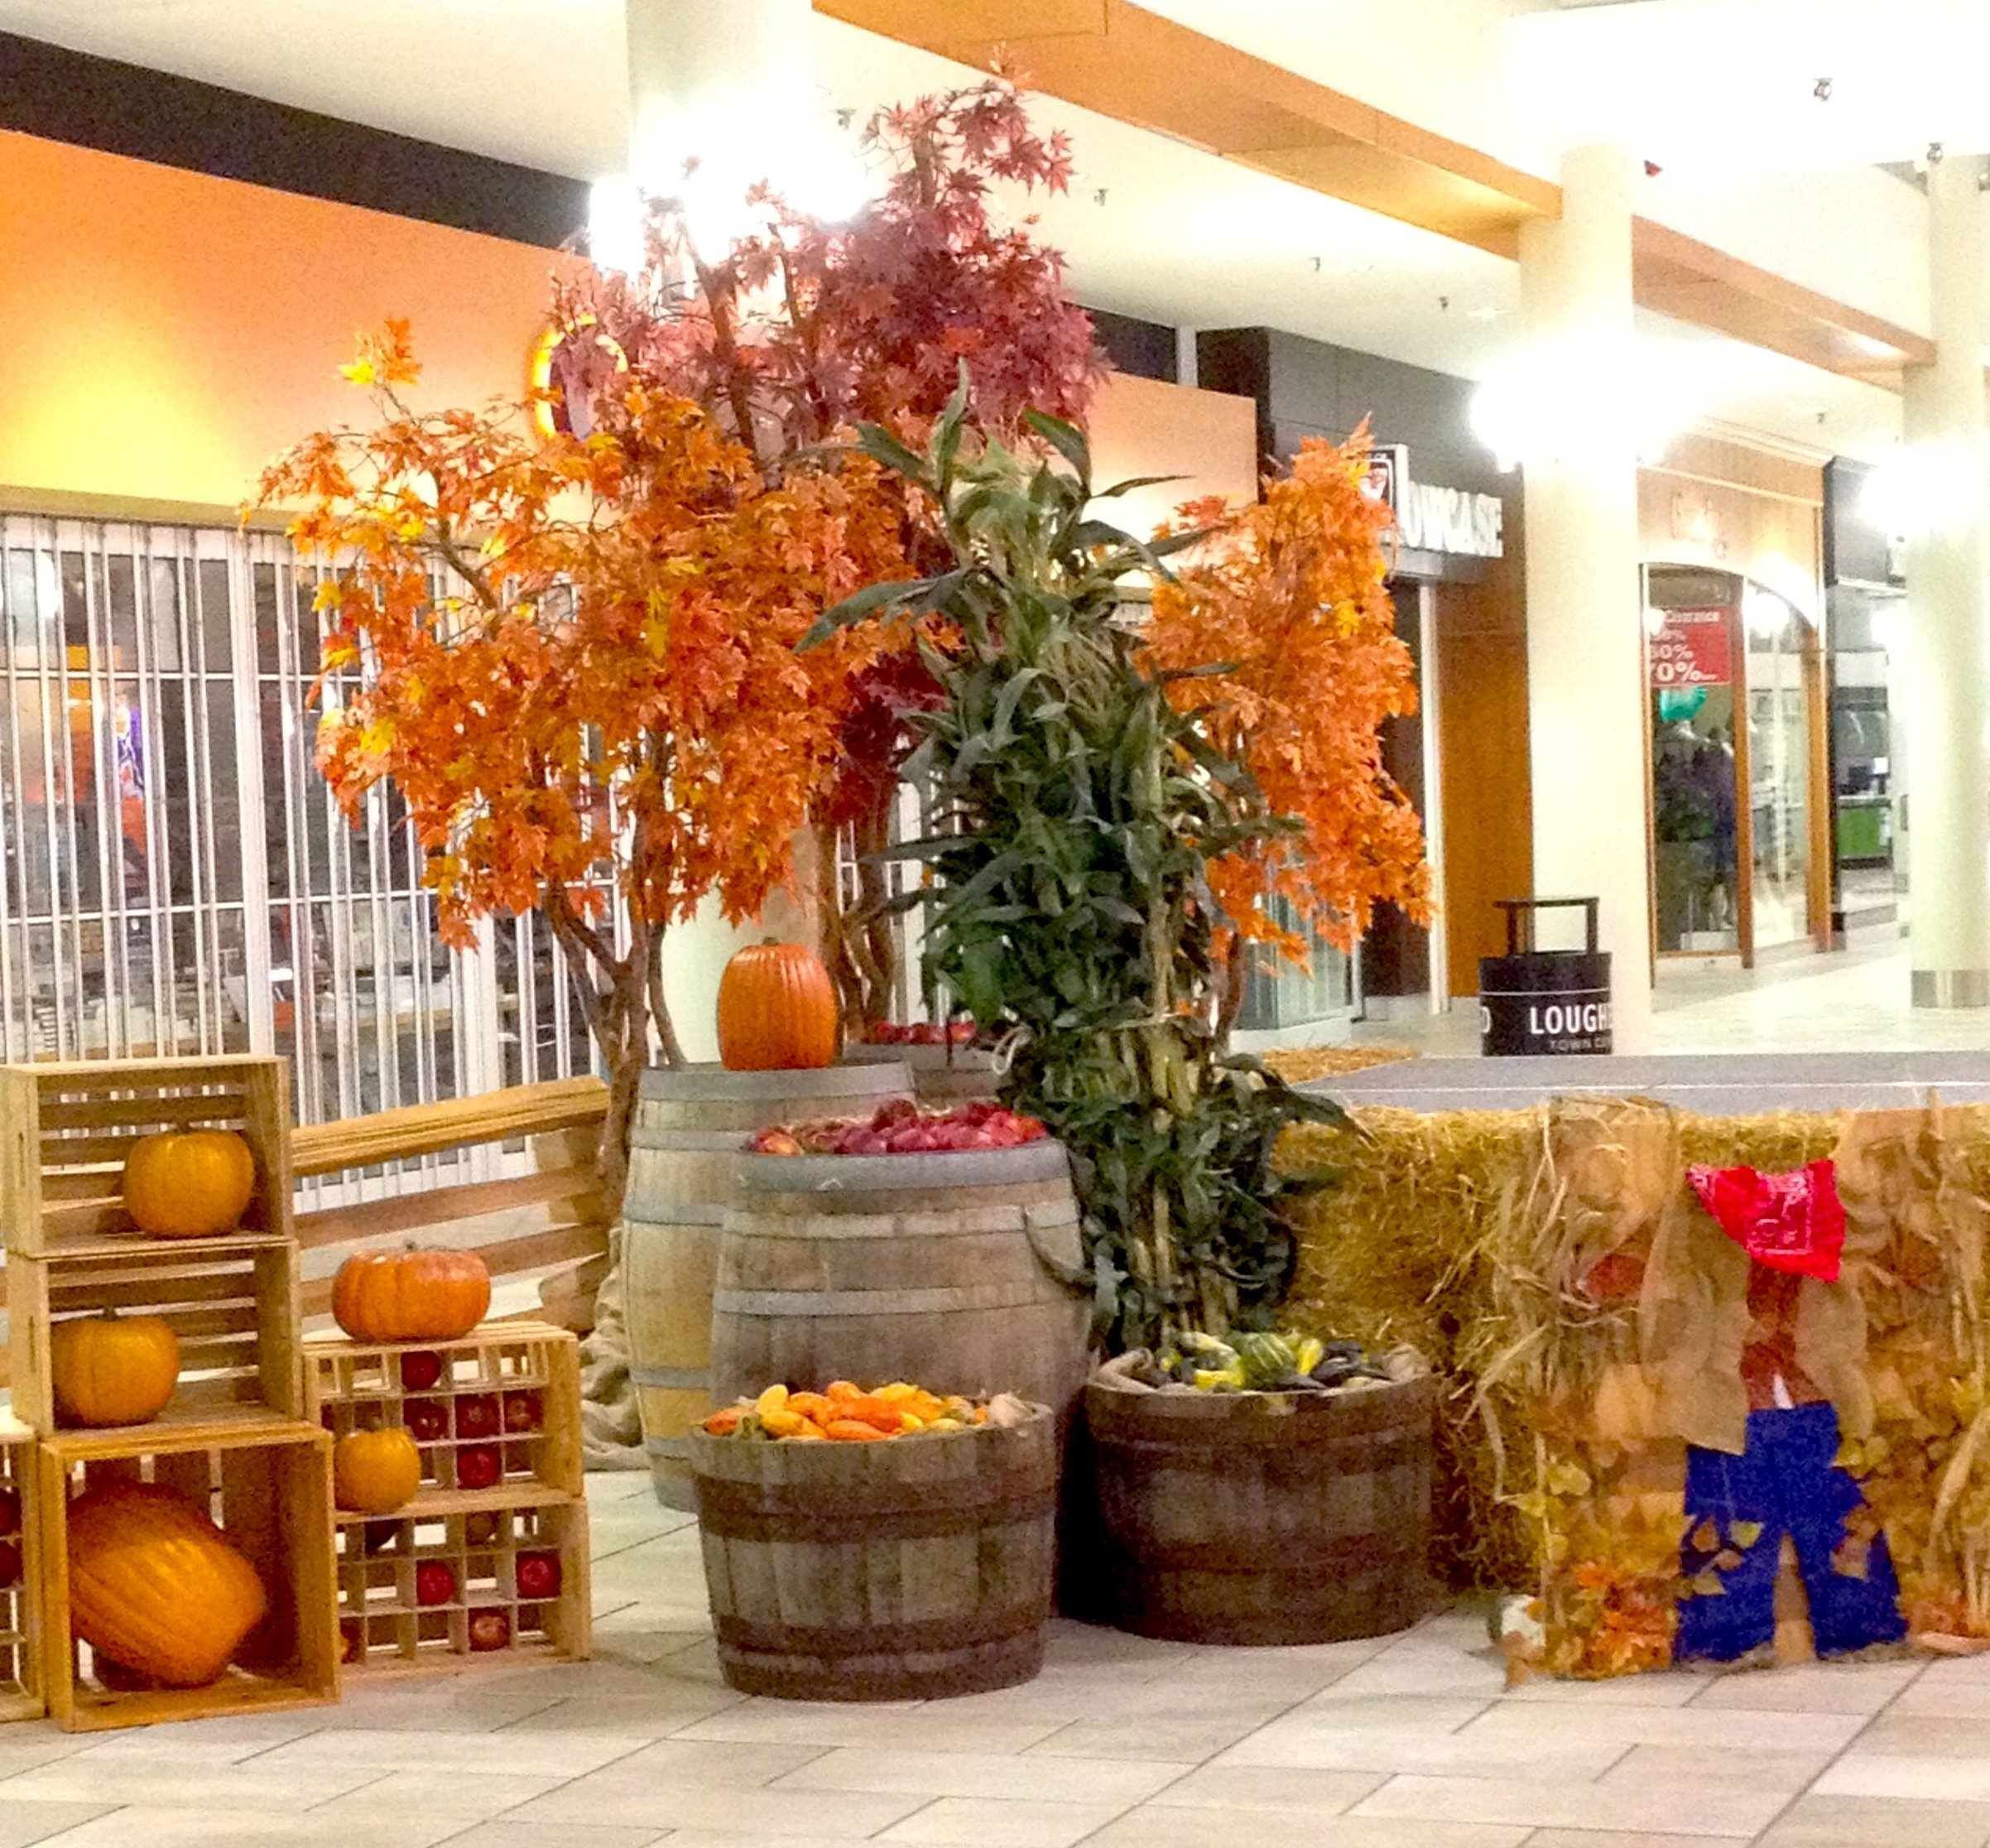 Harvest and fall display featuring pumpkins, fall trees and hay bails